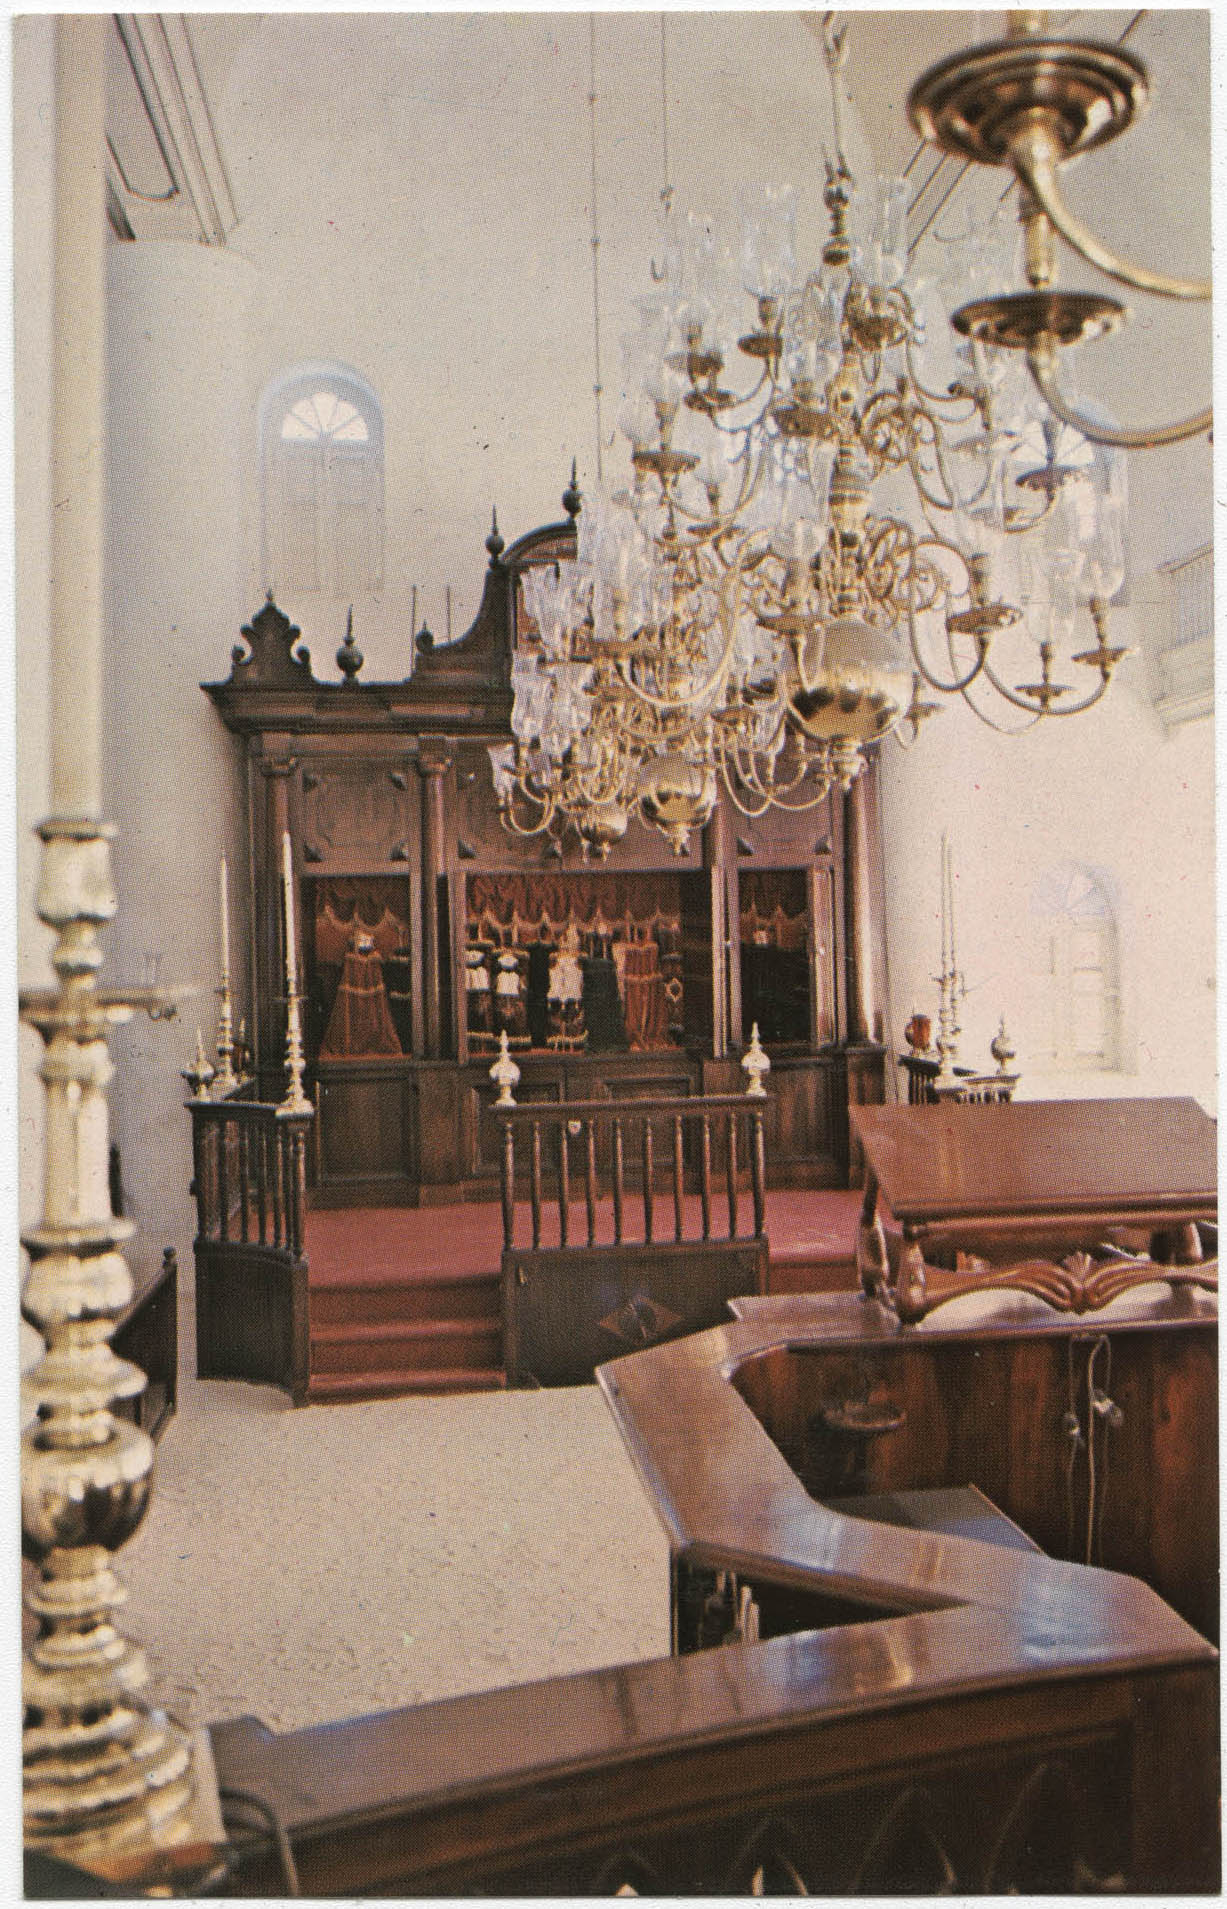 View of interior of Mikve Israel-Emanuel Synagogue looking towards Hekhal containing 18 scrolls and showing old brass chandeliers and sandcovered floor flanked by wooden benches.